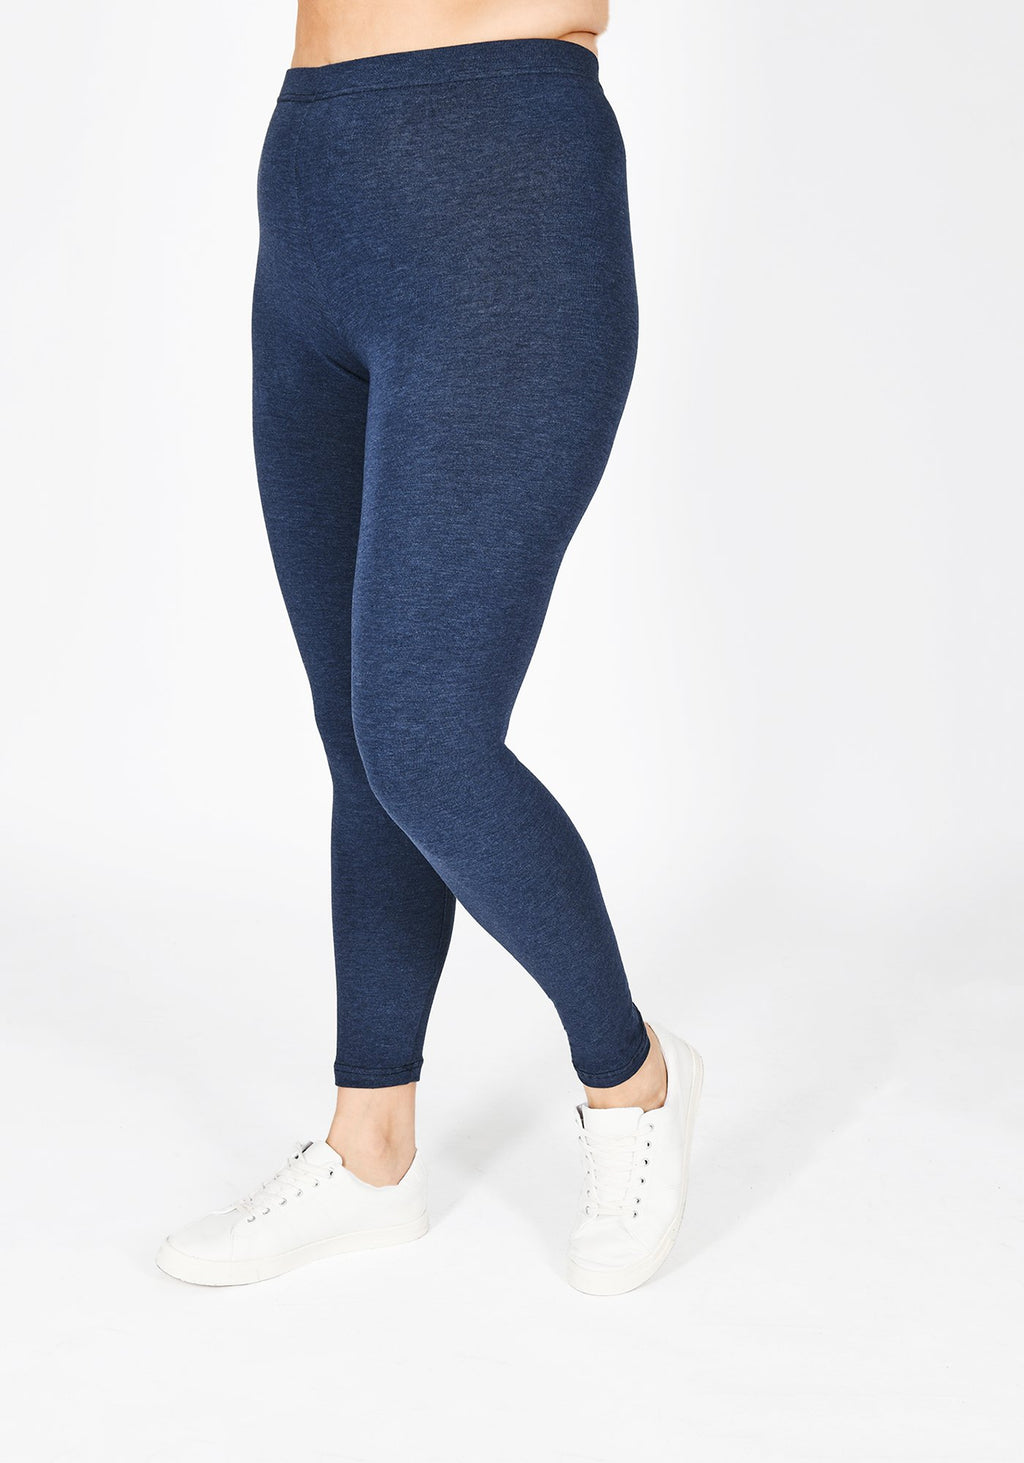 Classic Plus Size Infinity Blue Marl Leggings 1